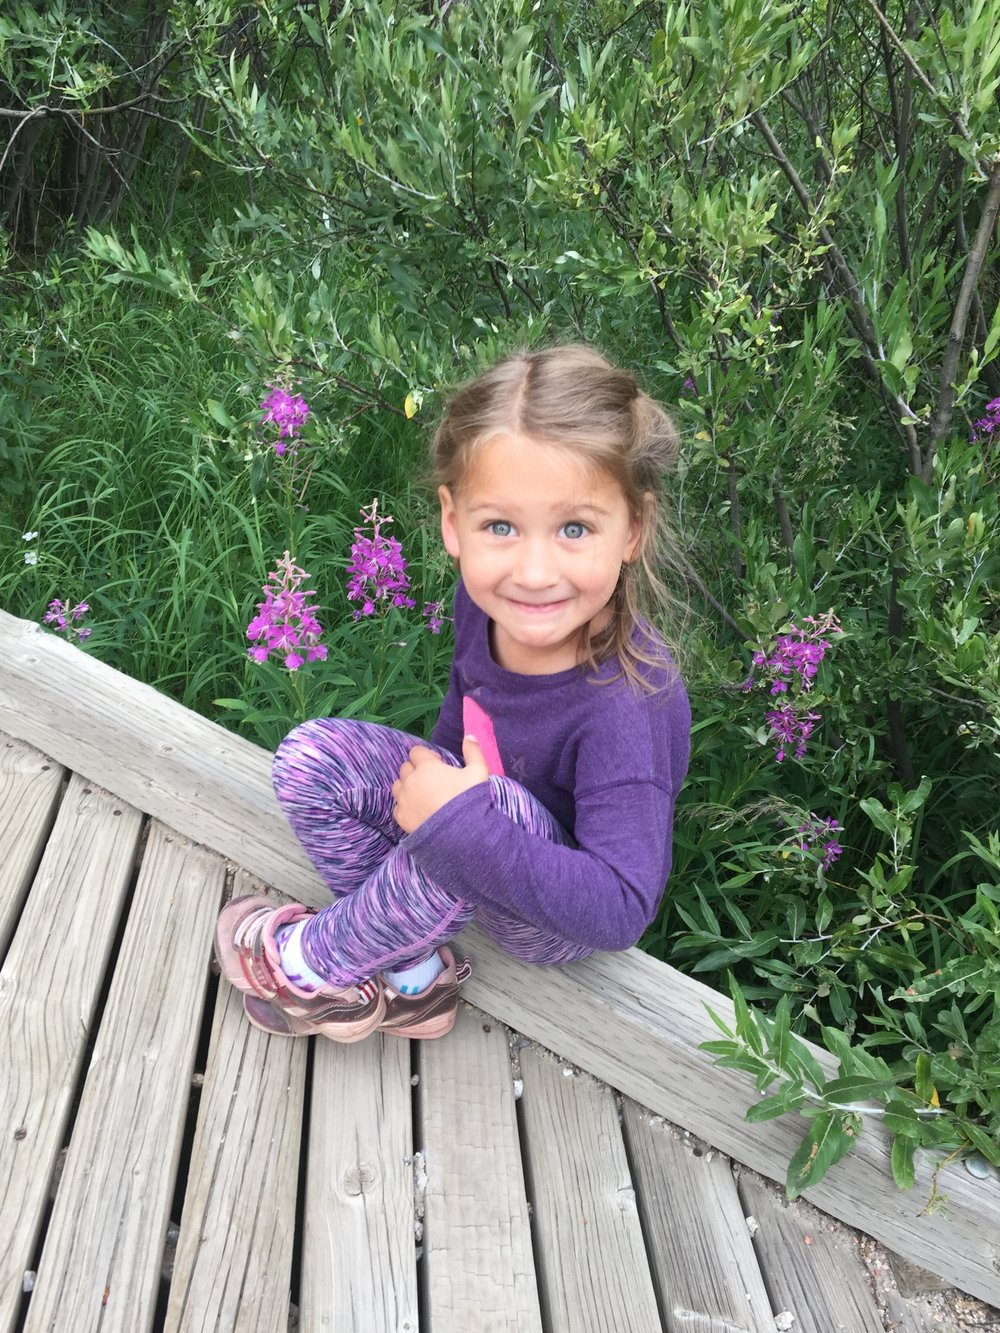 Maia was very willing to pose with the beautiful wildflowers!